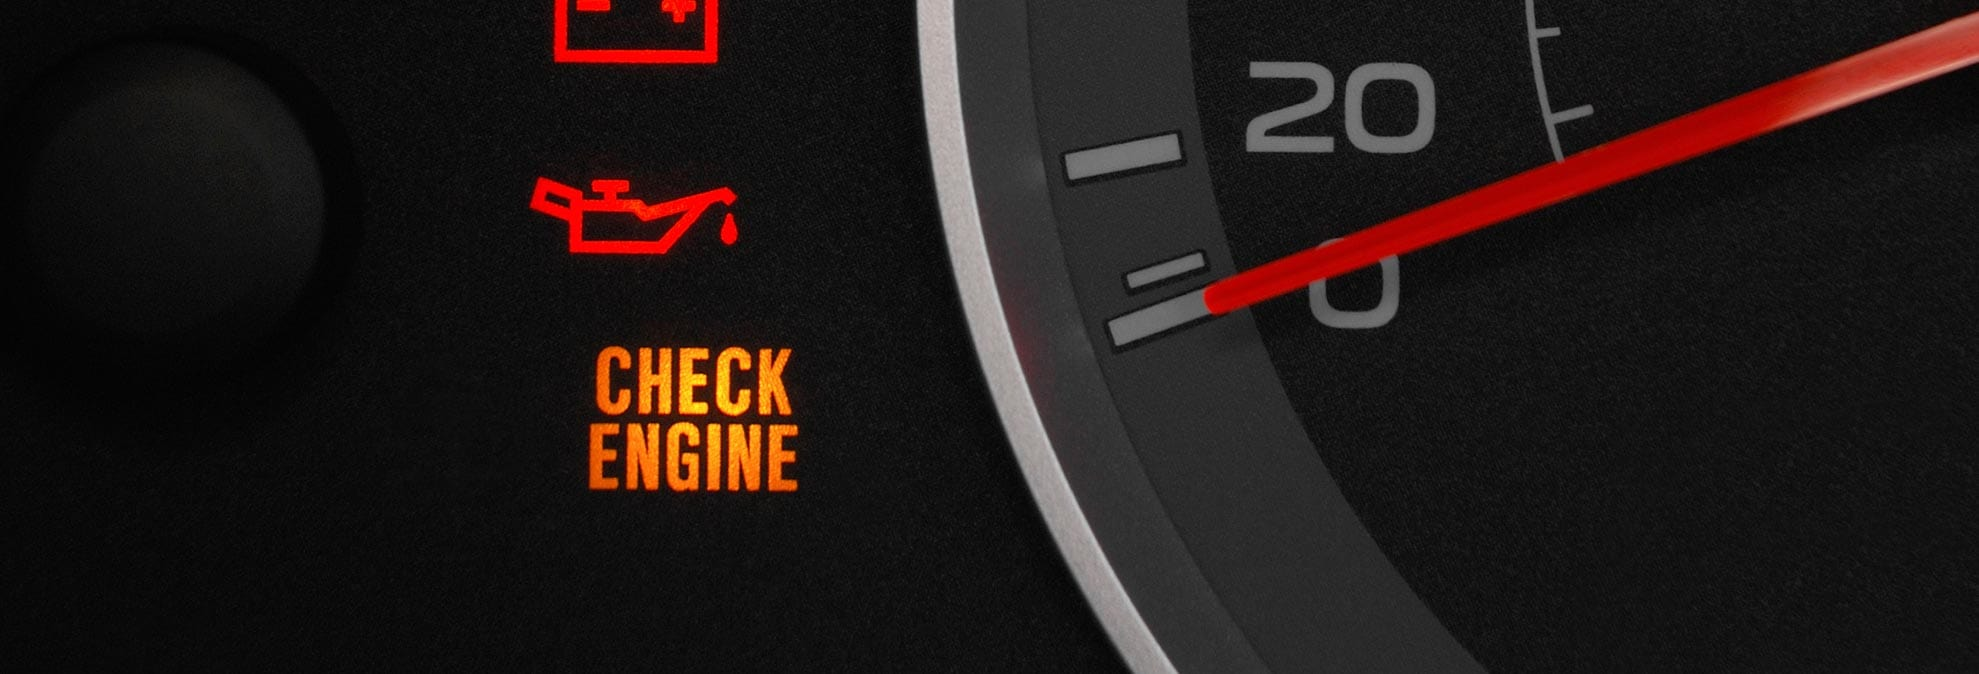 Car Showing Check Engine Sign